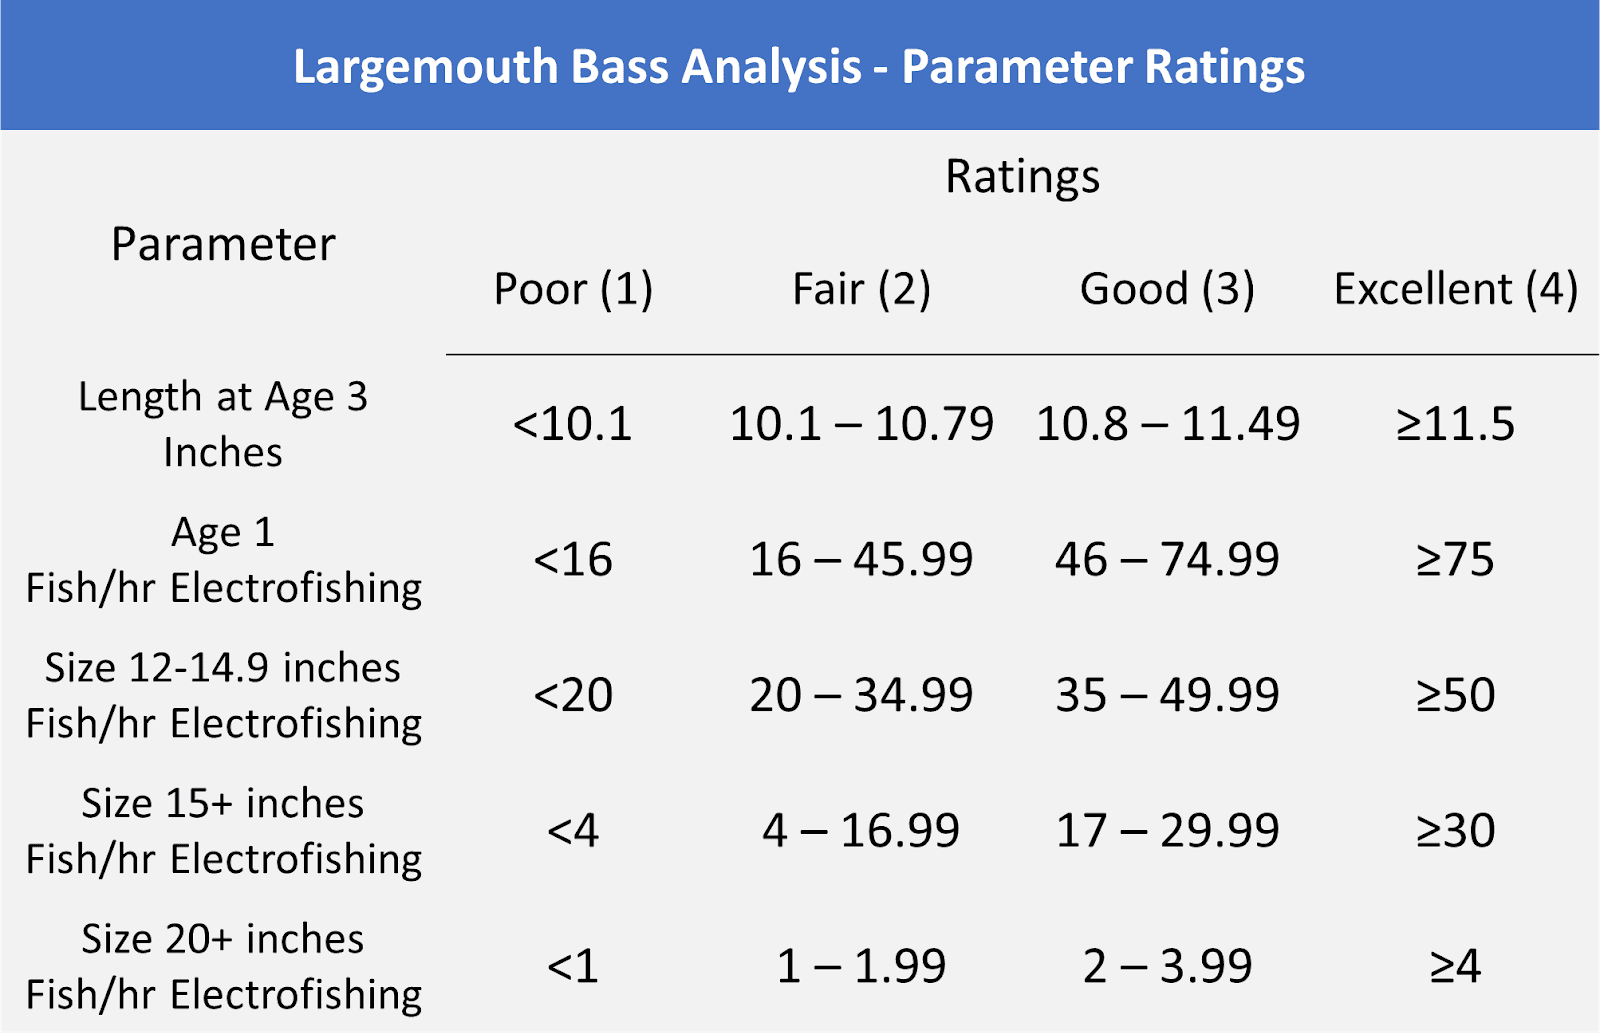 Largemouth Bass Analysis Parameter Ratings